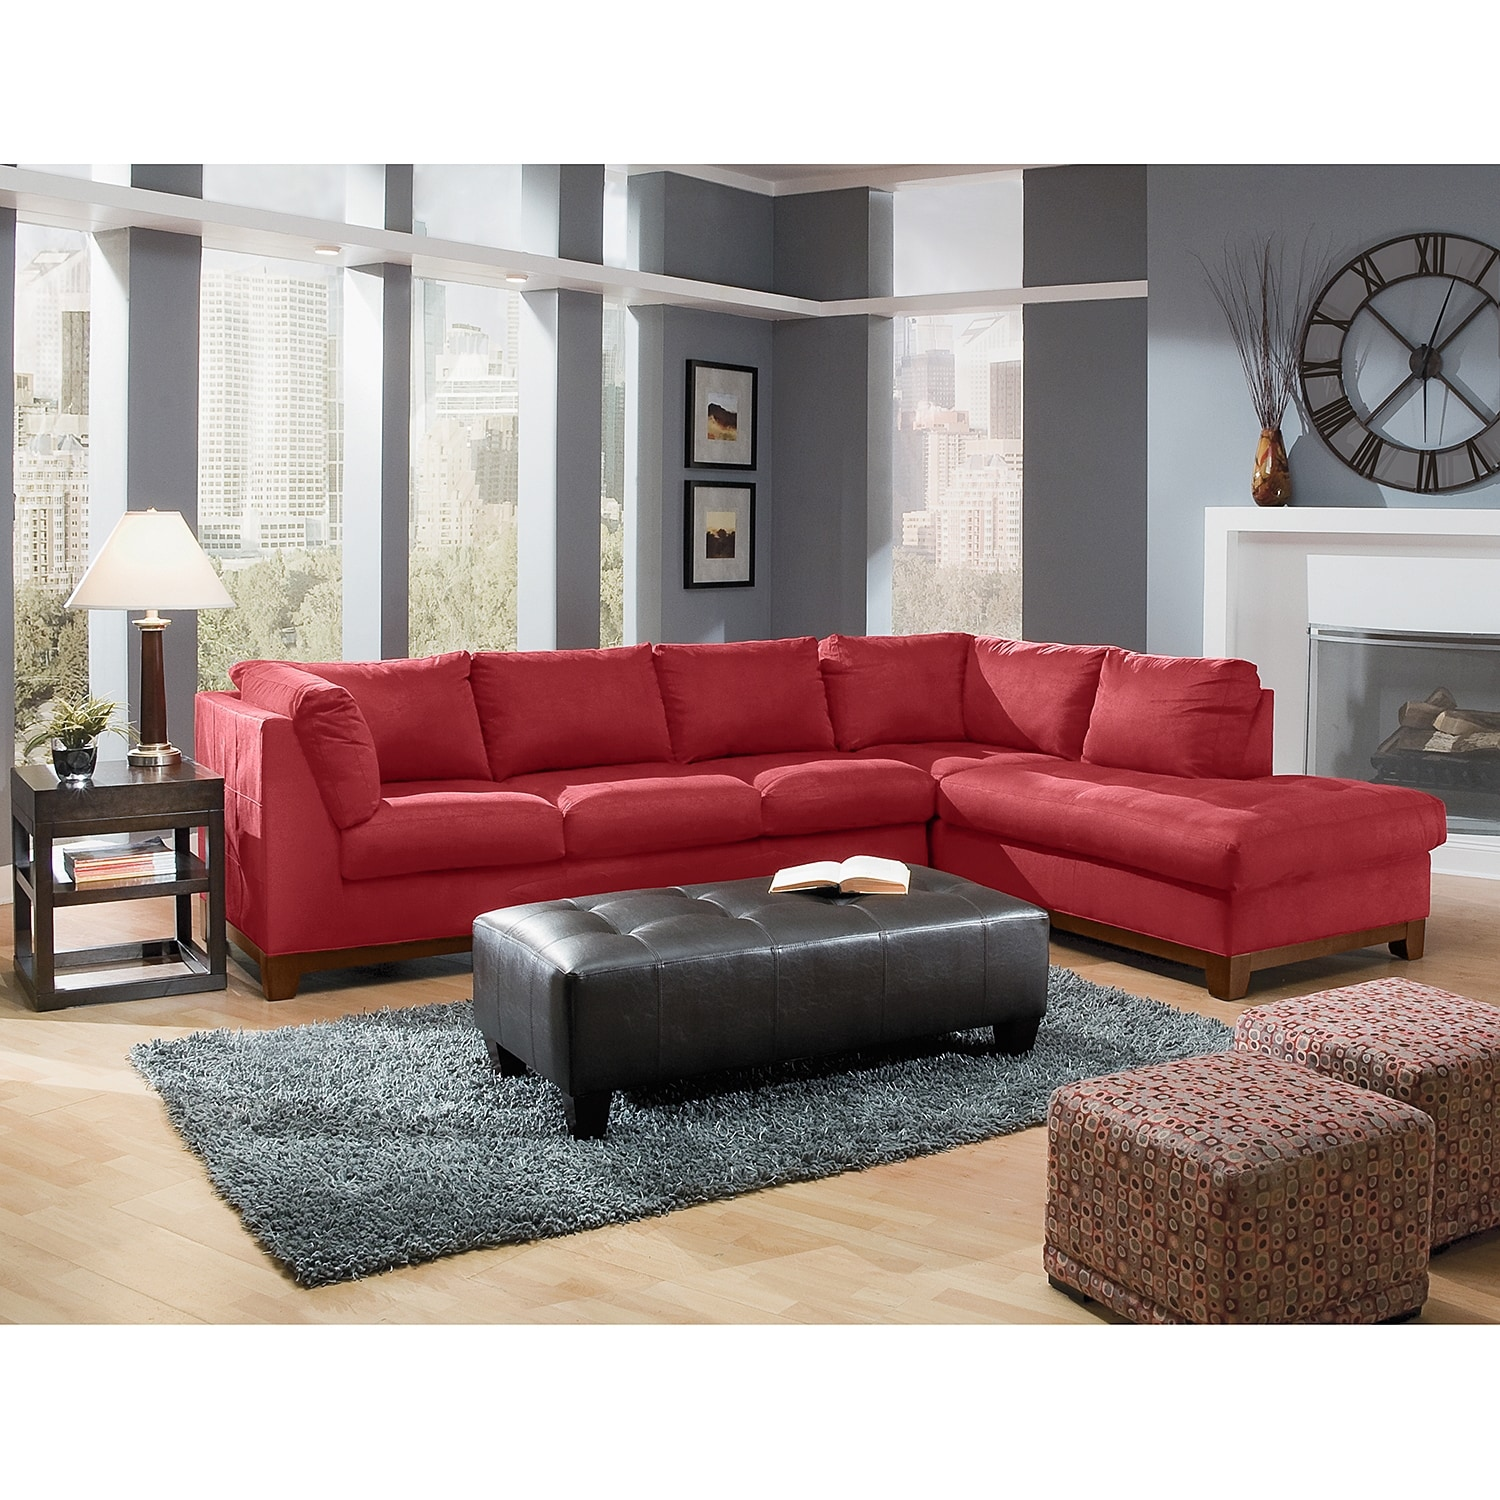 8965m Sectional End American Signature Furniture: American Signature Furniture